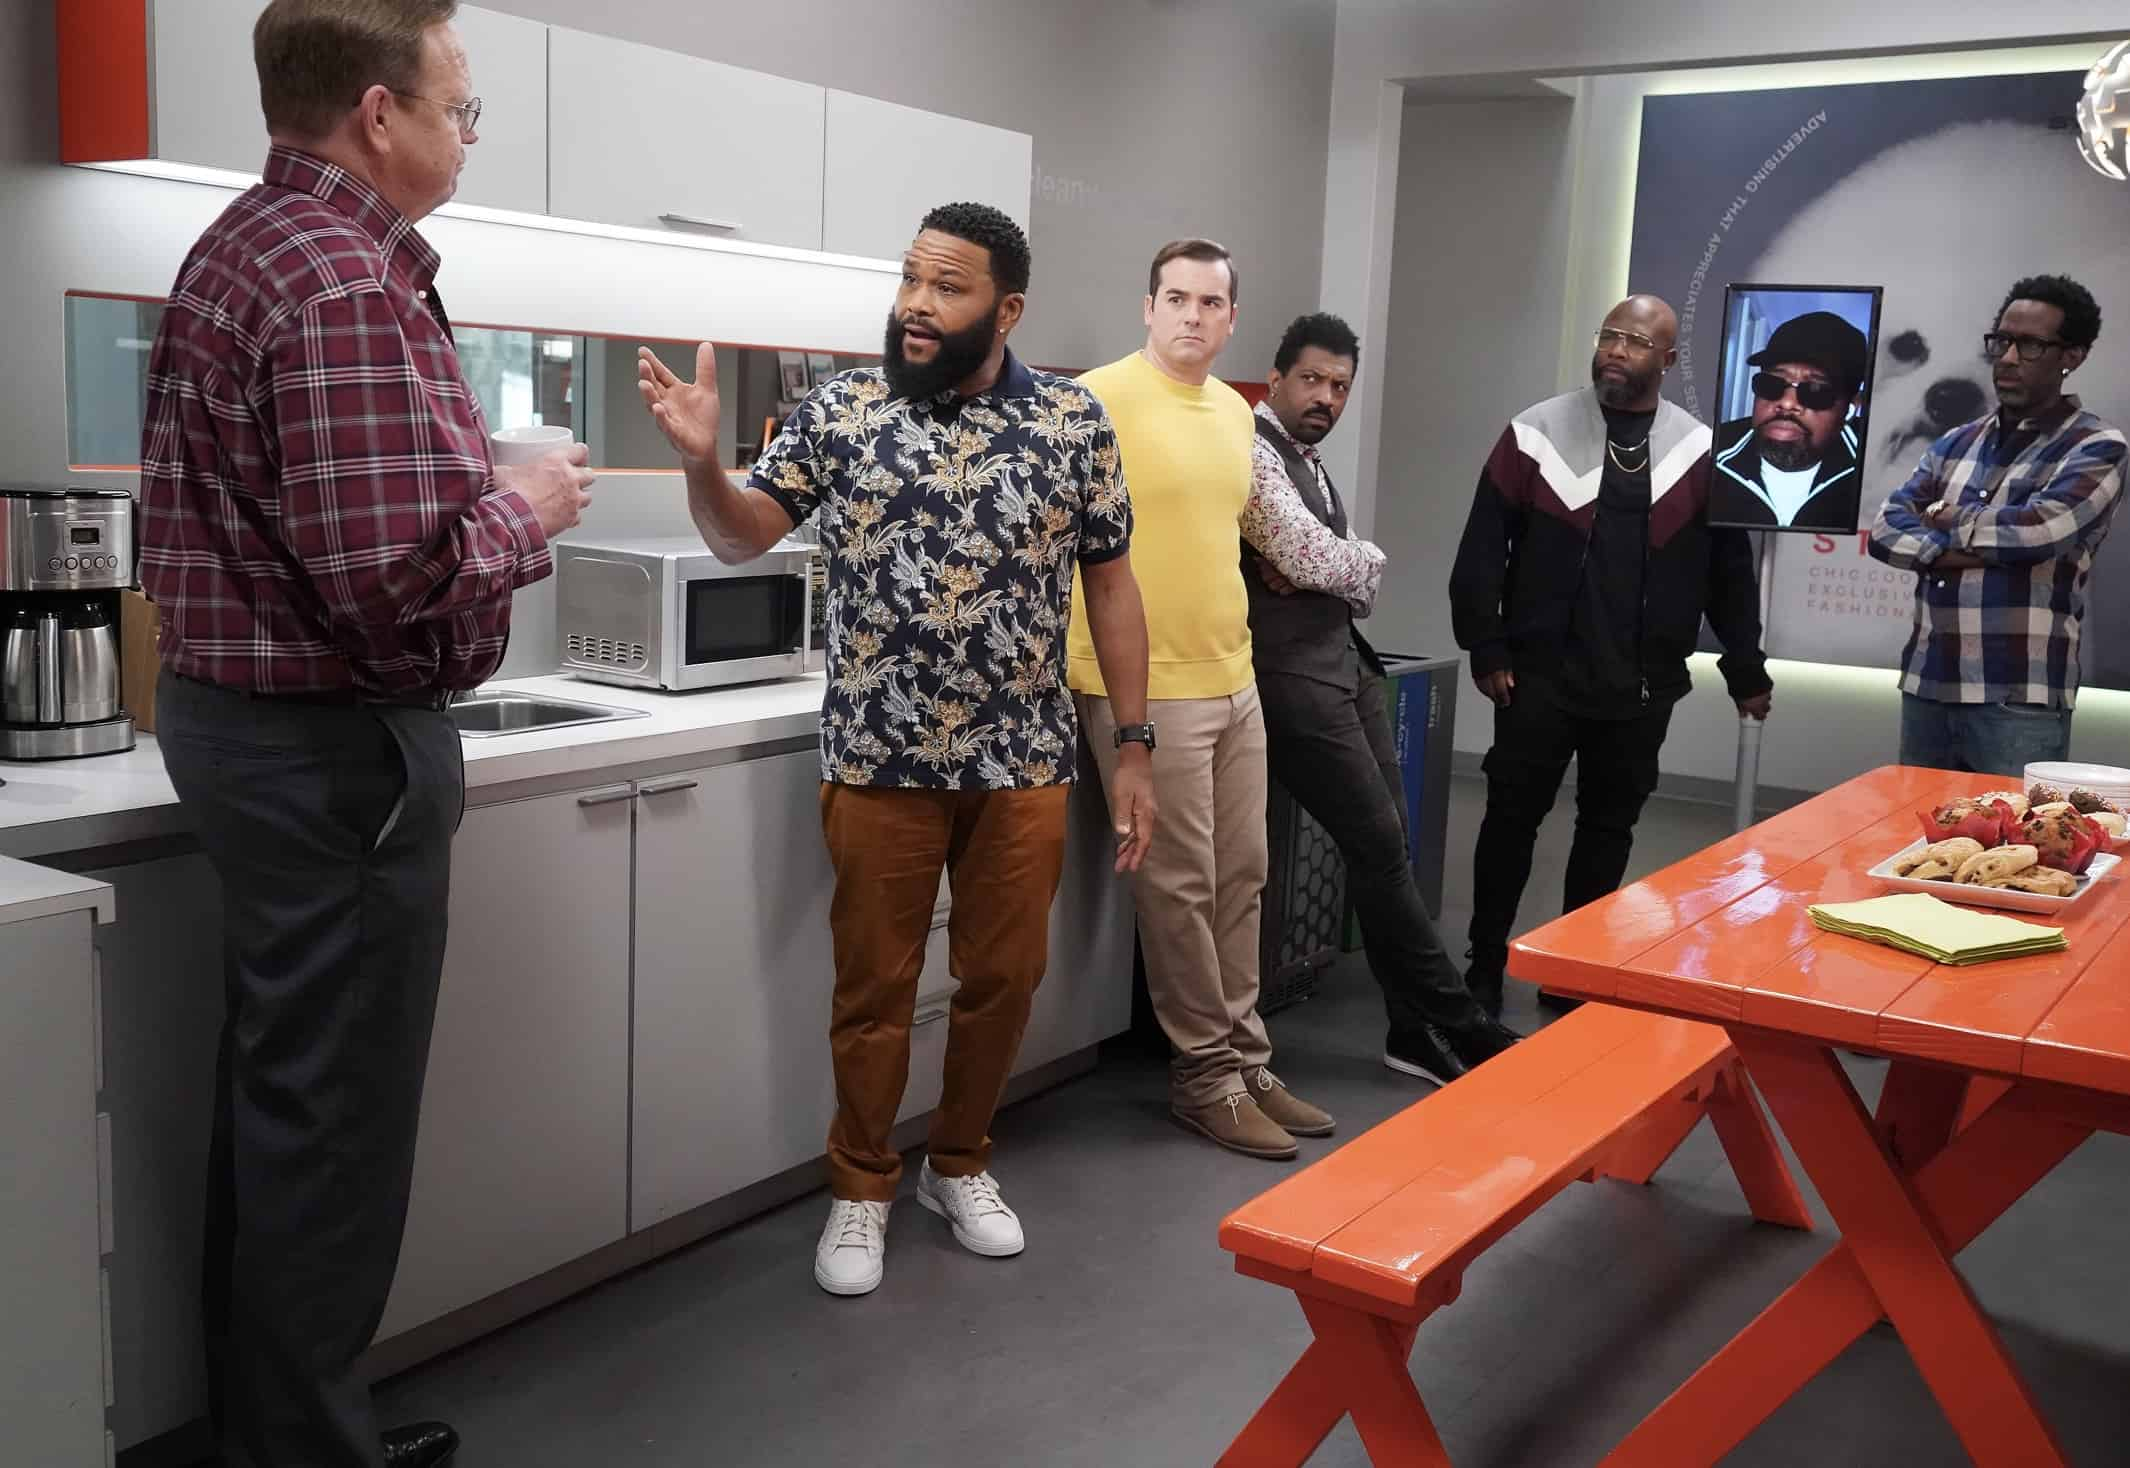 """BLACK-ISH Season 7 Episode 21- """"Urban Legend"""" – Dre feels pigeonholed to the urban marketing team at Stevens & Lido and realizes he needs to make some big career changes. Boyz II Men stop by the office to help out the team with a SoFi campaign pitch.  Meanwhile, Junior has to deal with the twins who are overstaying their welcome at his and Olivia's apartment on the season finale of """"black-ish,"""" TUESDAY, MAY 18 (9:00-9:30 p.m. EDT), on ABC. (ABC/Richard Cartwright) PETER MACKENZIE, ANTHONY ANDERSON, JEFF MEACHAM, DEON COLE, WANYA MORRIS, SHAWN STOCKMAN"""